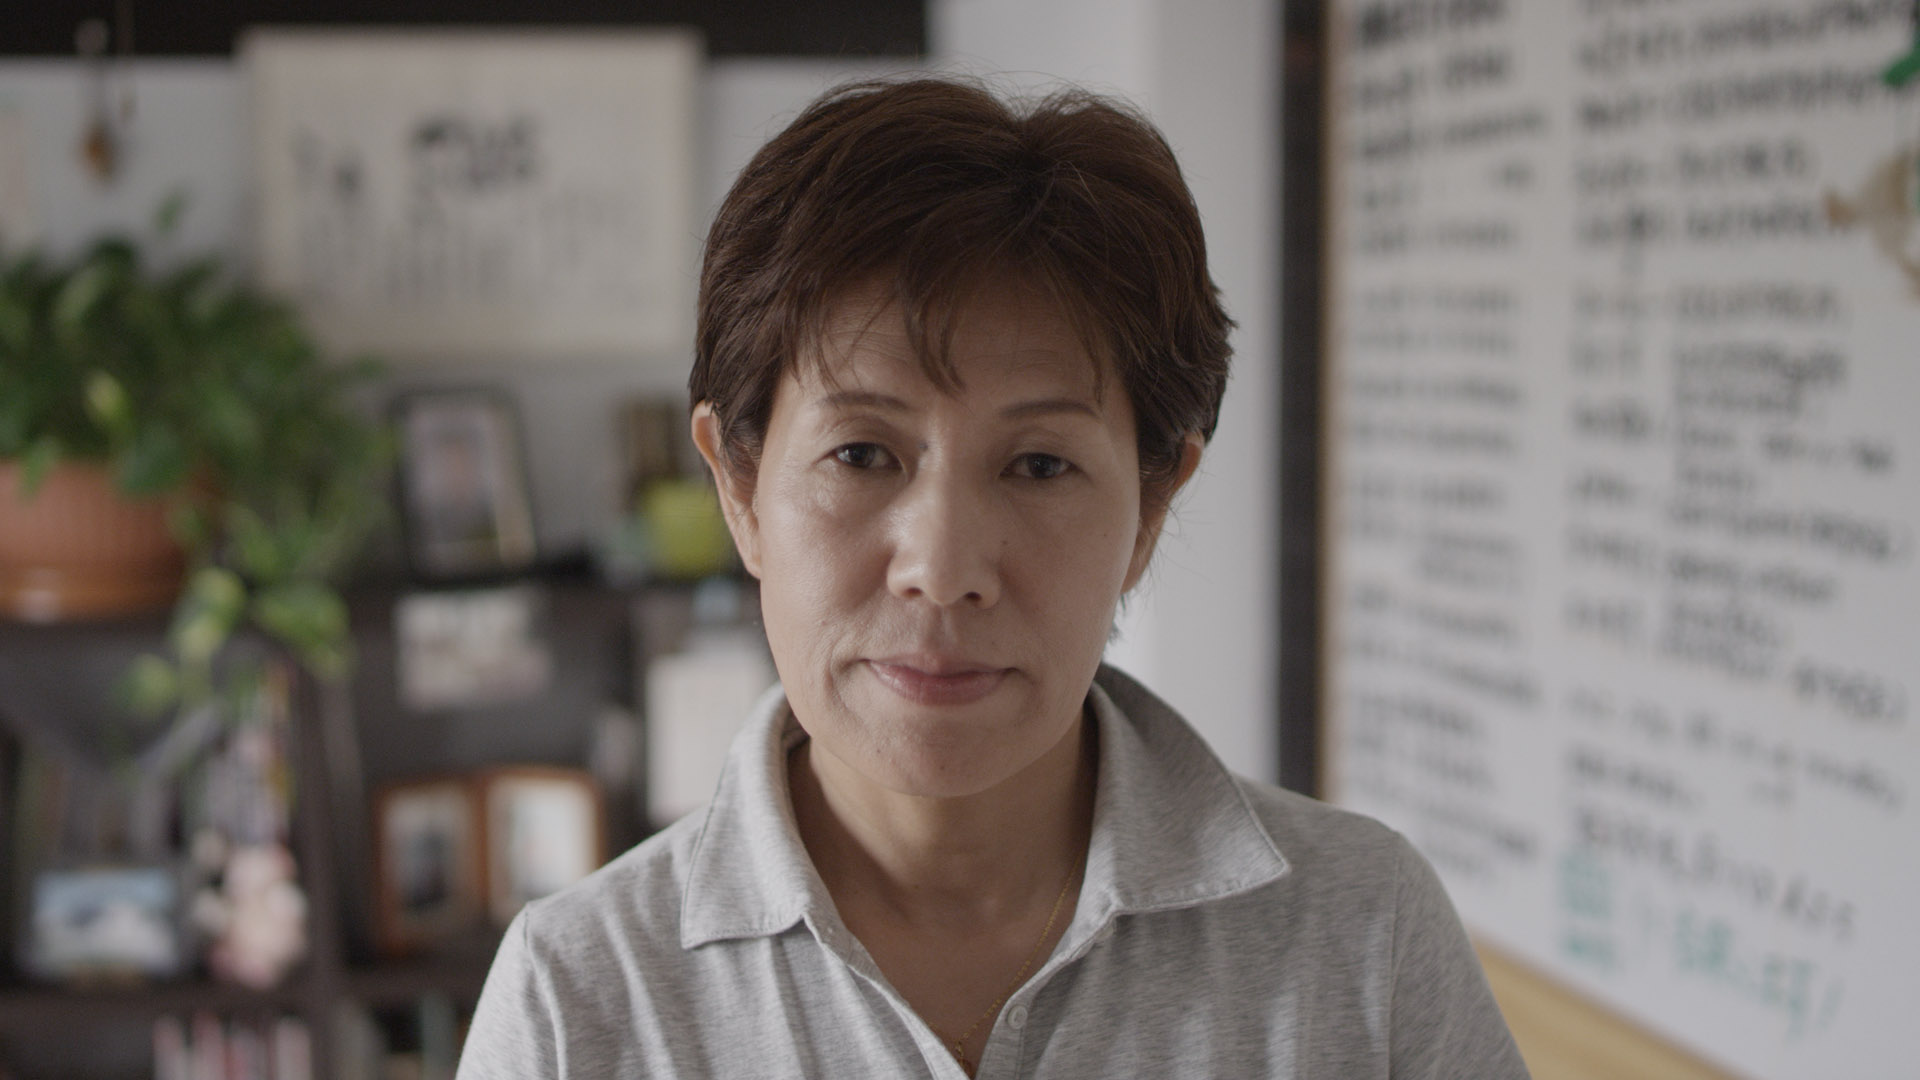 Six Japanese women offer brutally honest views on the state of thecleanup, the cover-ups and untruths since the nuclear accident inFukushima, and how it has affected their lives, homes and families.